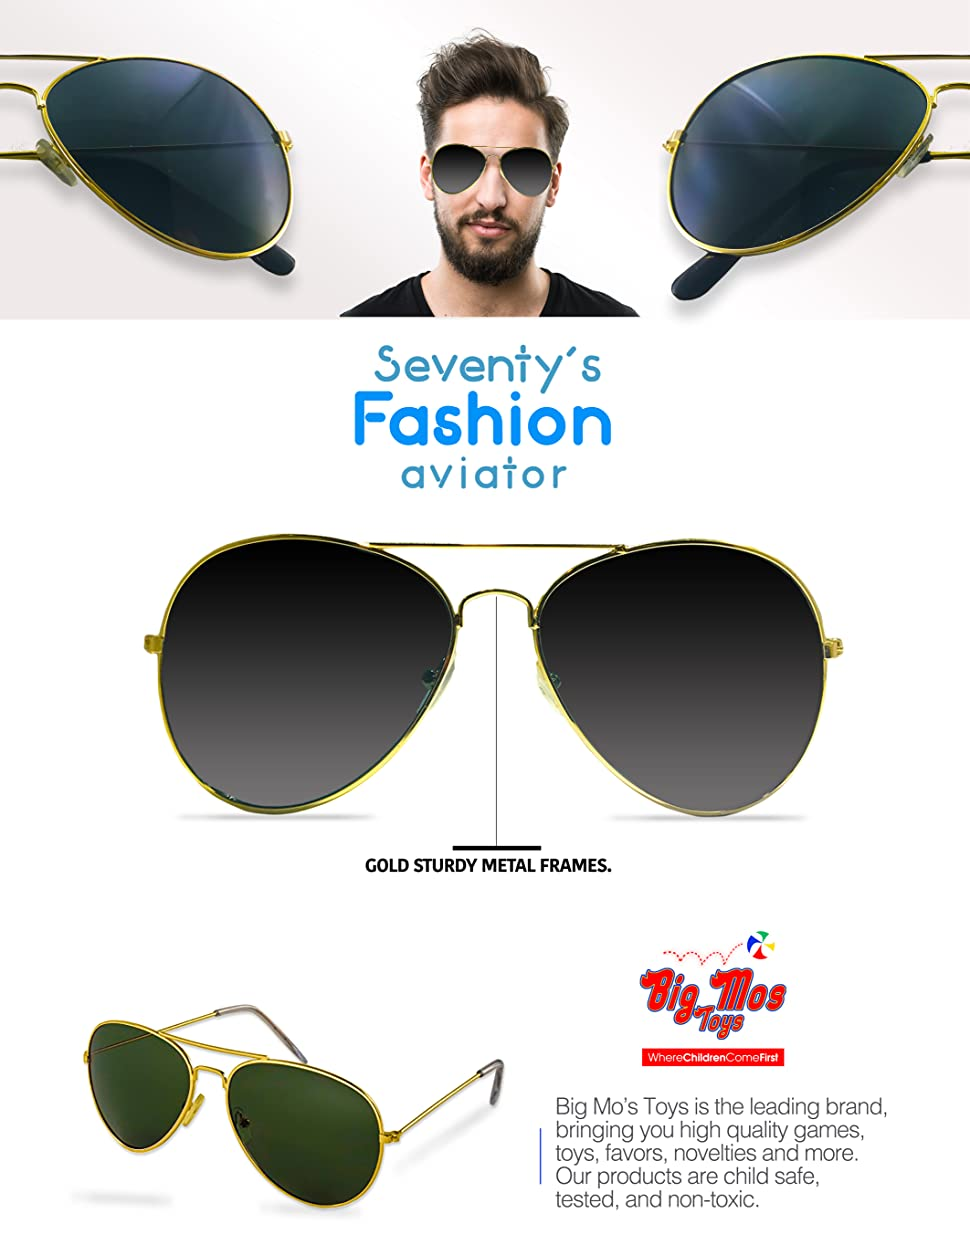 cf590b786 These Aviator Style Sunglasses Are What Will Make A Police, Pilot Or  Rock-star Costume Come Alive! The Gold Frames And Dark Lenses Make It A  Classic Piece.